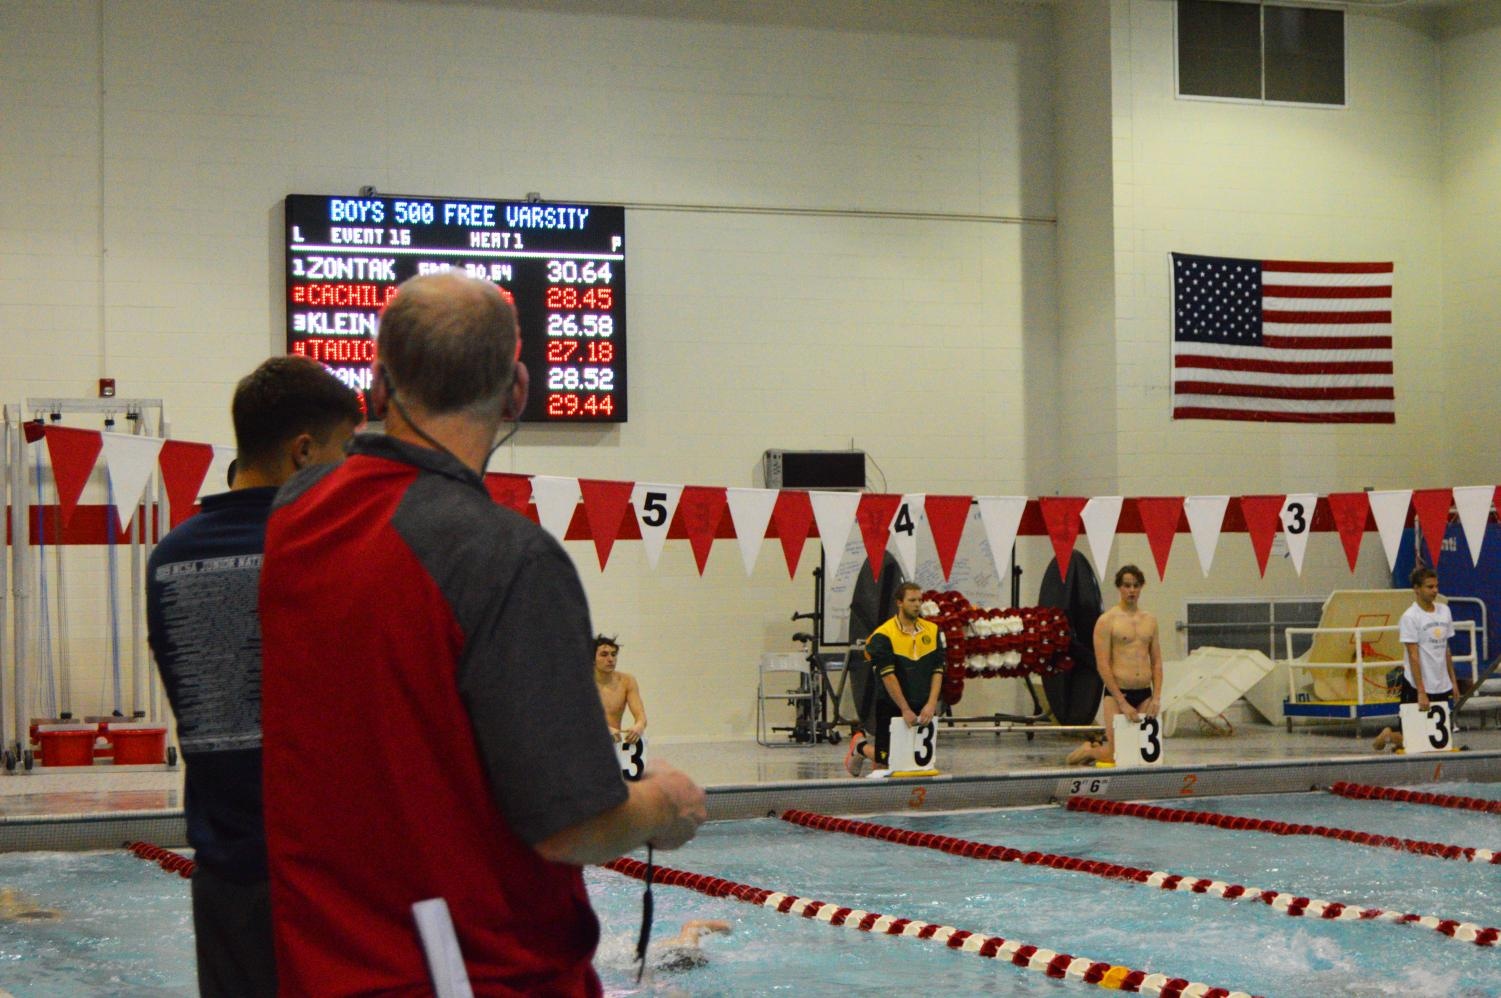 Varsity+swimming+coaches+keeping+track+of+their+players%27+times.+